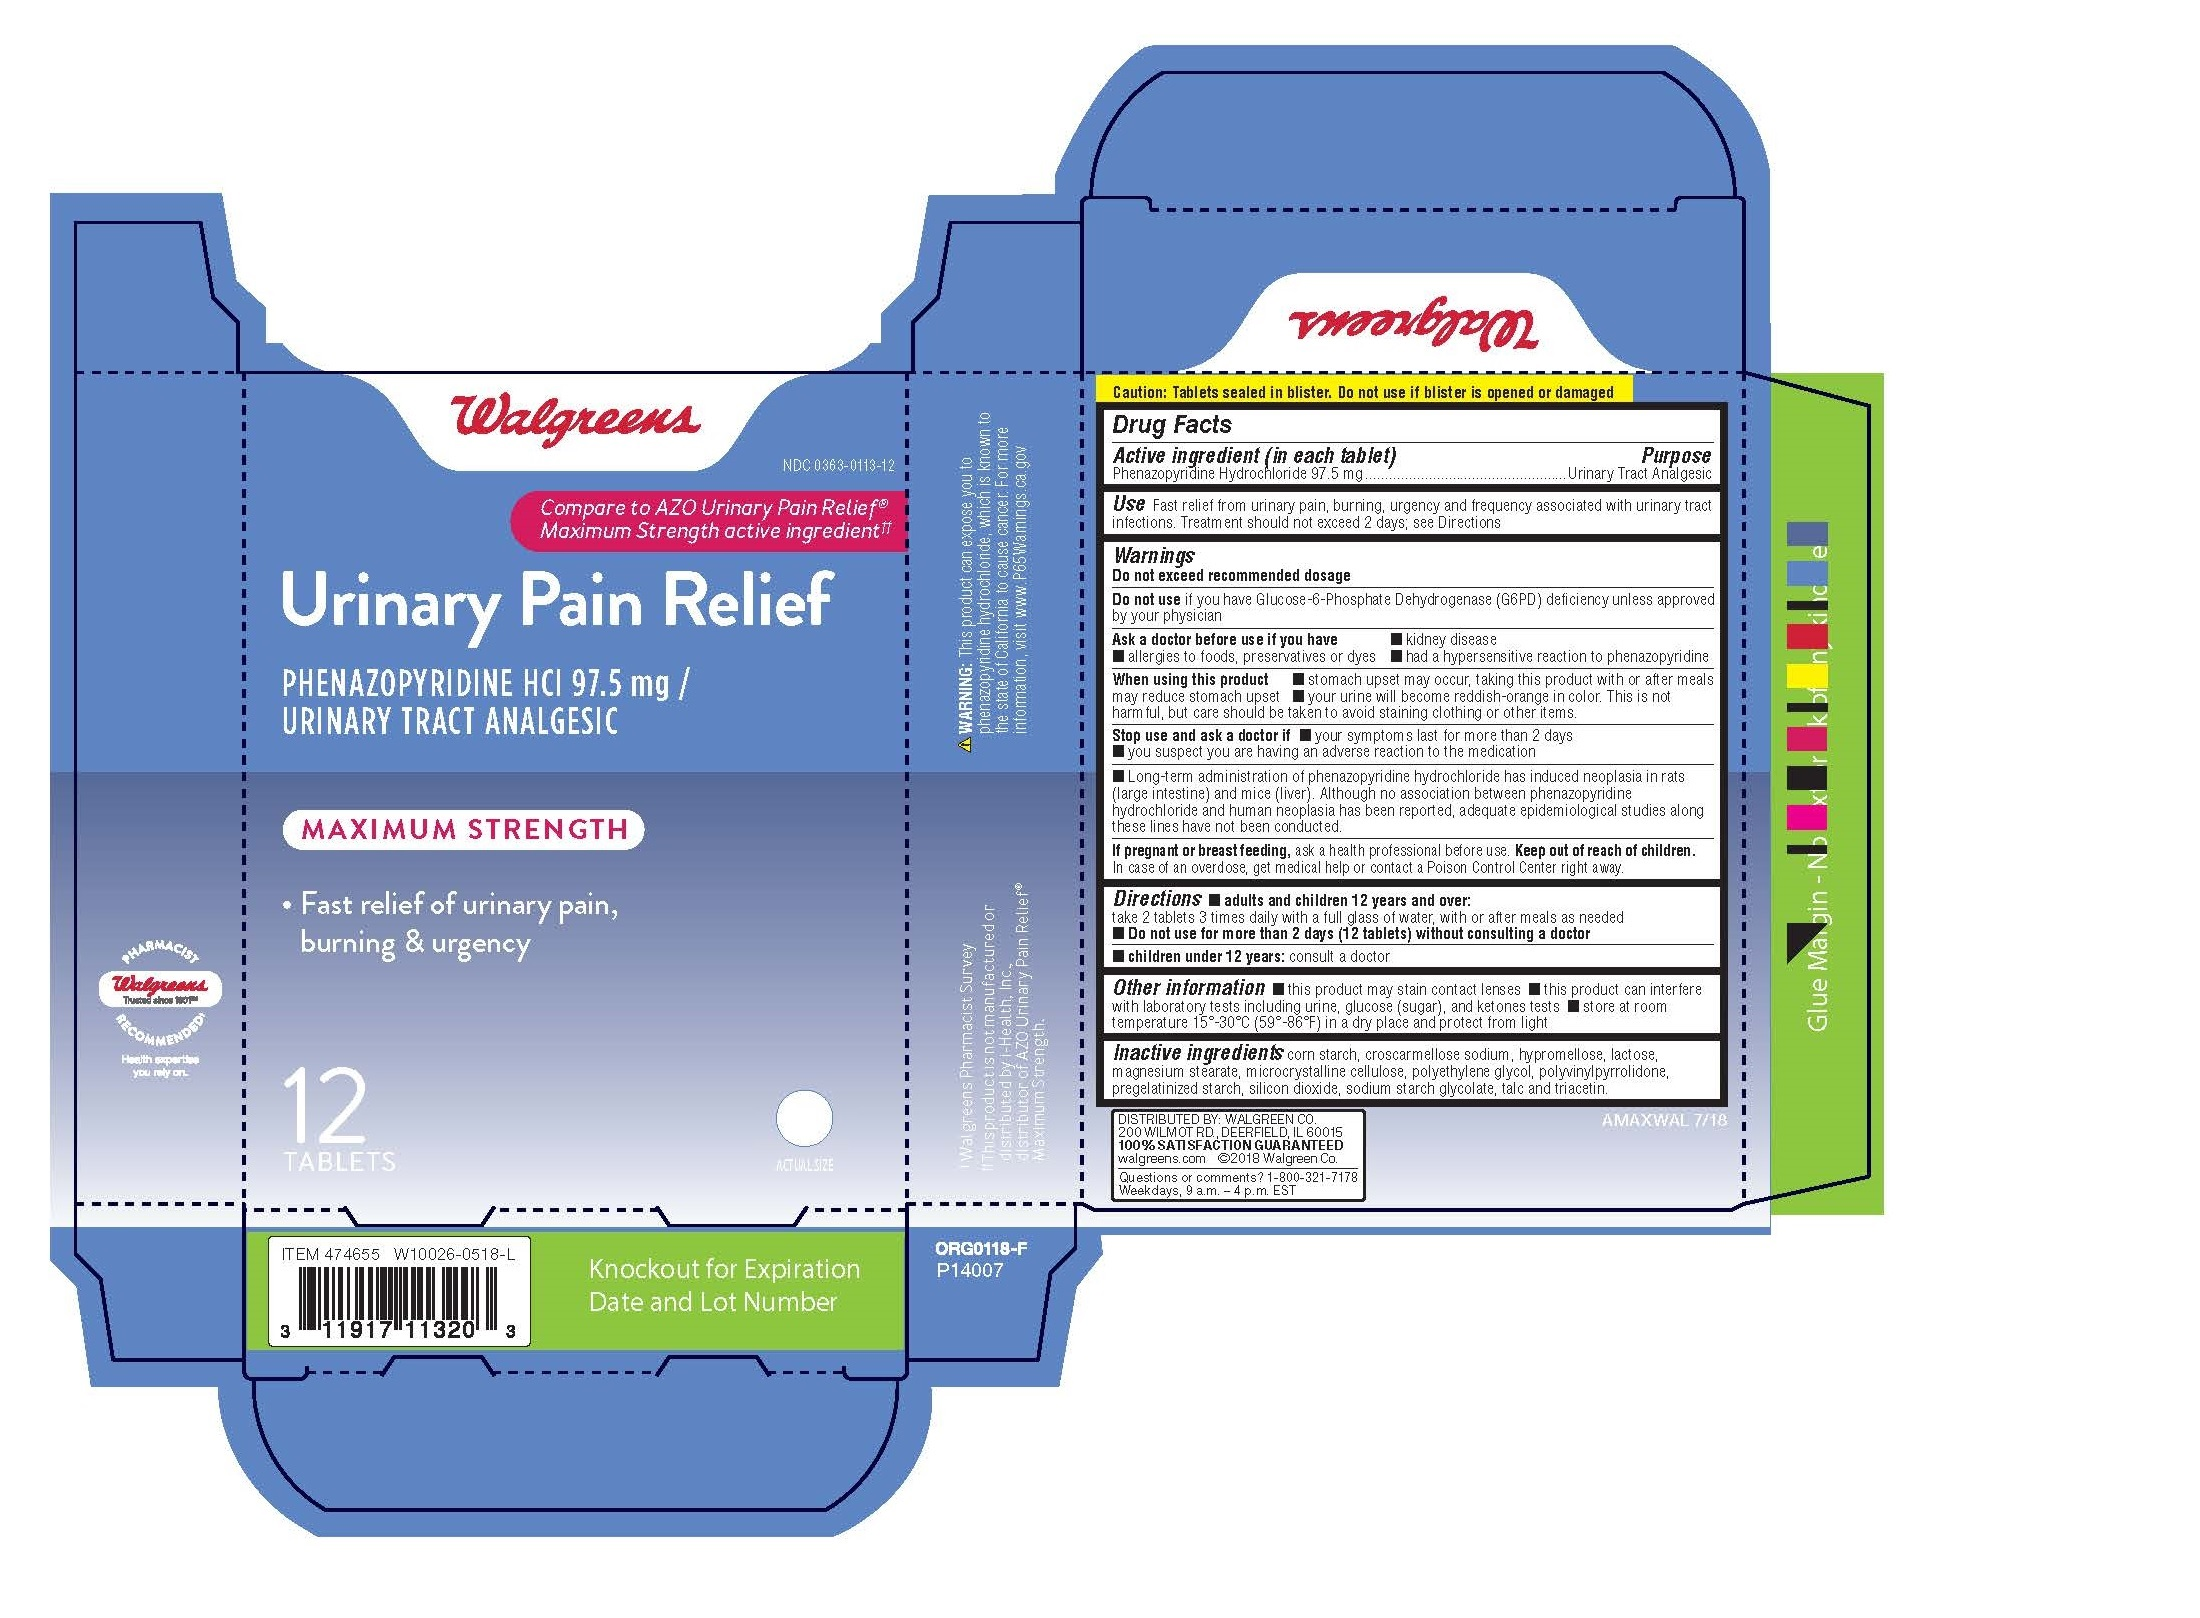 Walgreens Urinary Pain Relief Maximum Strength: Details from the FDA